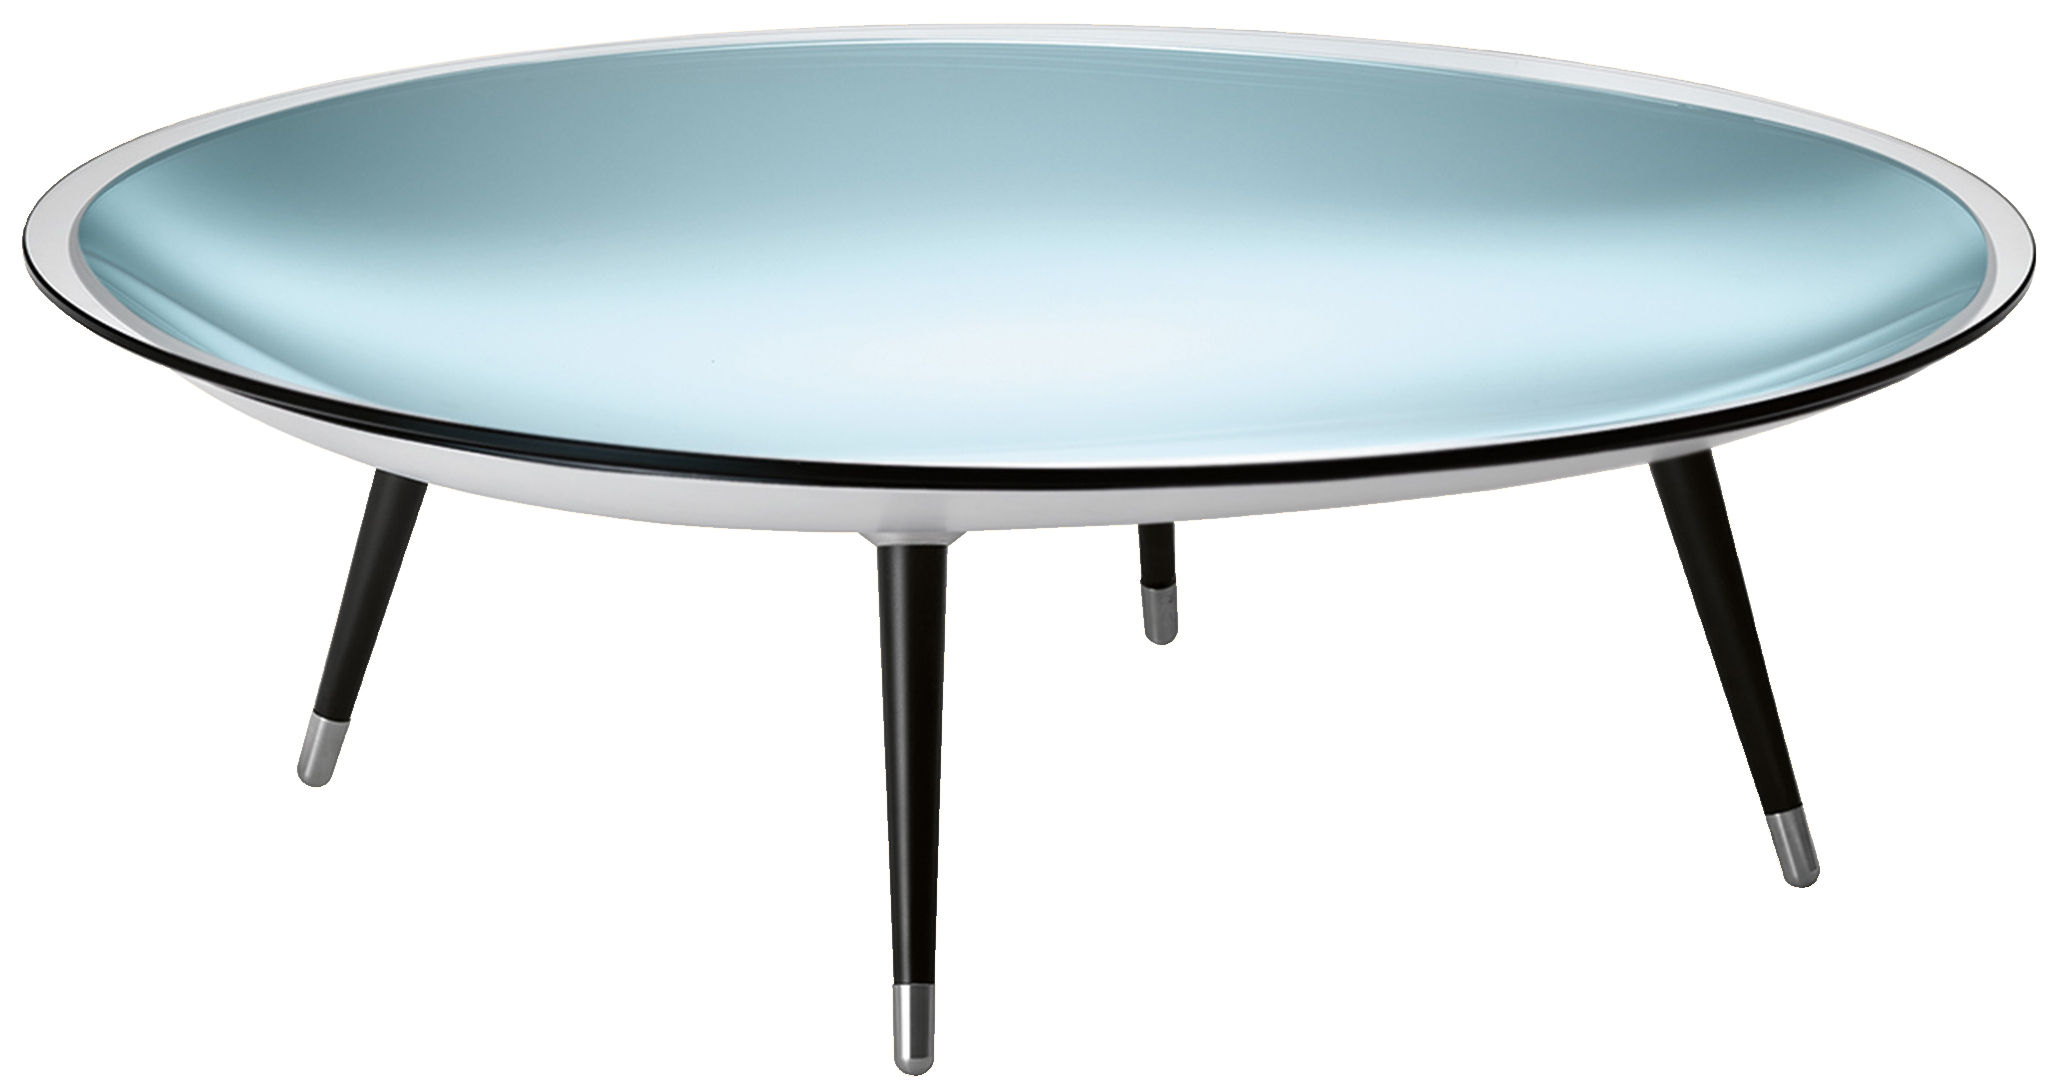 Furniture - Coffee Tables - Roy Coffee table by FIAM - Top : Transparent / Argent -  Feets : Black / Lacqued steel - Brushed steel, Glass